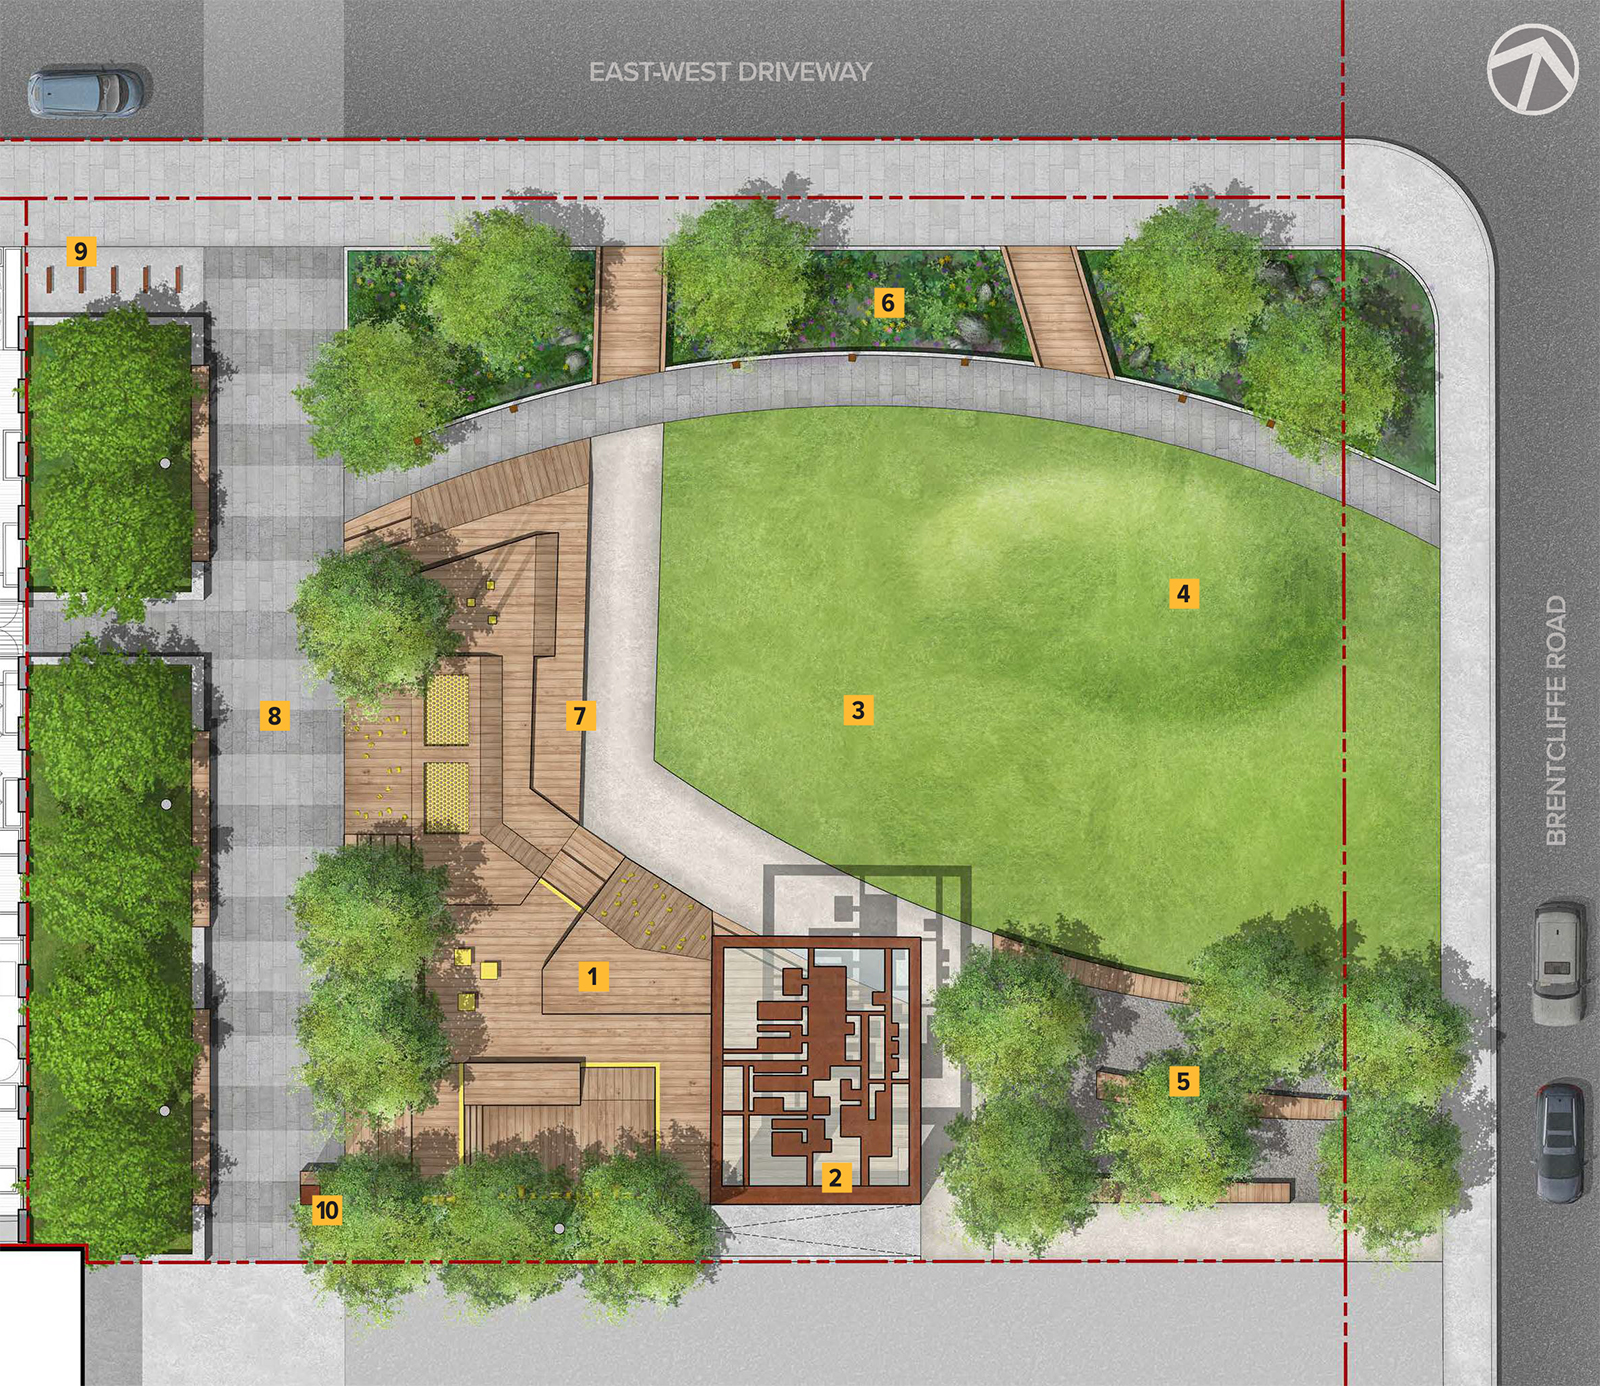 A aerial rendering of the proposed site plan for the new park at 939 Eglinton Avenue with features and amenities identified with numbered labels throughout the park. The park will be square in shape and located at the corner of Brentcliffe Road and an east-west driveway.